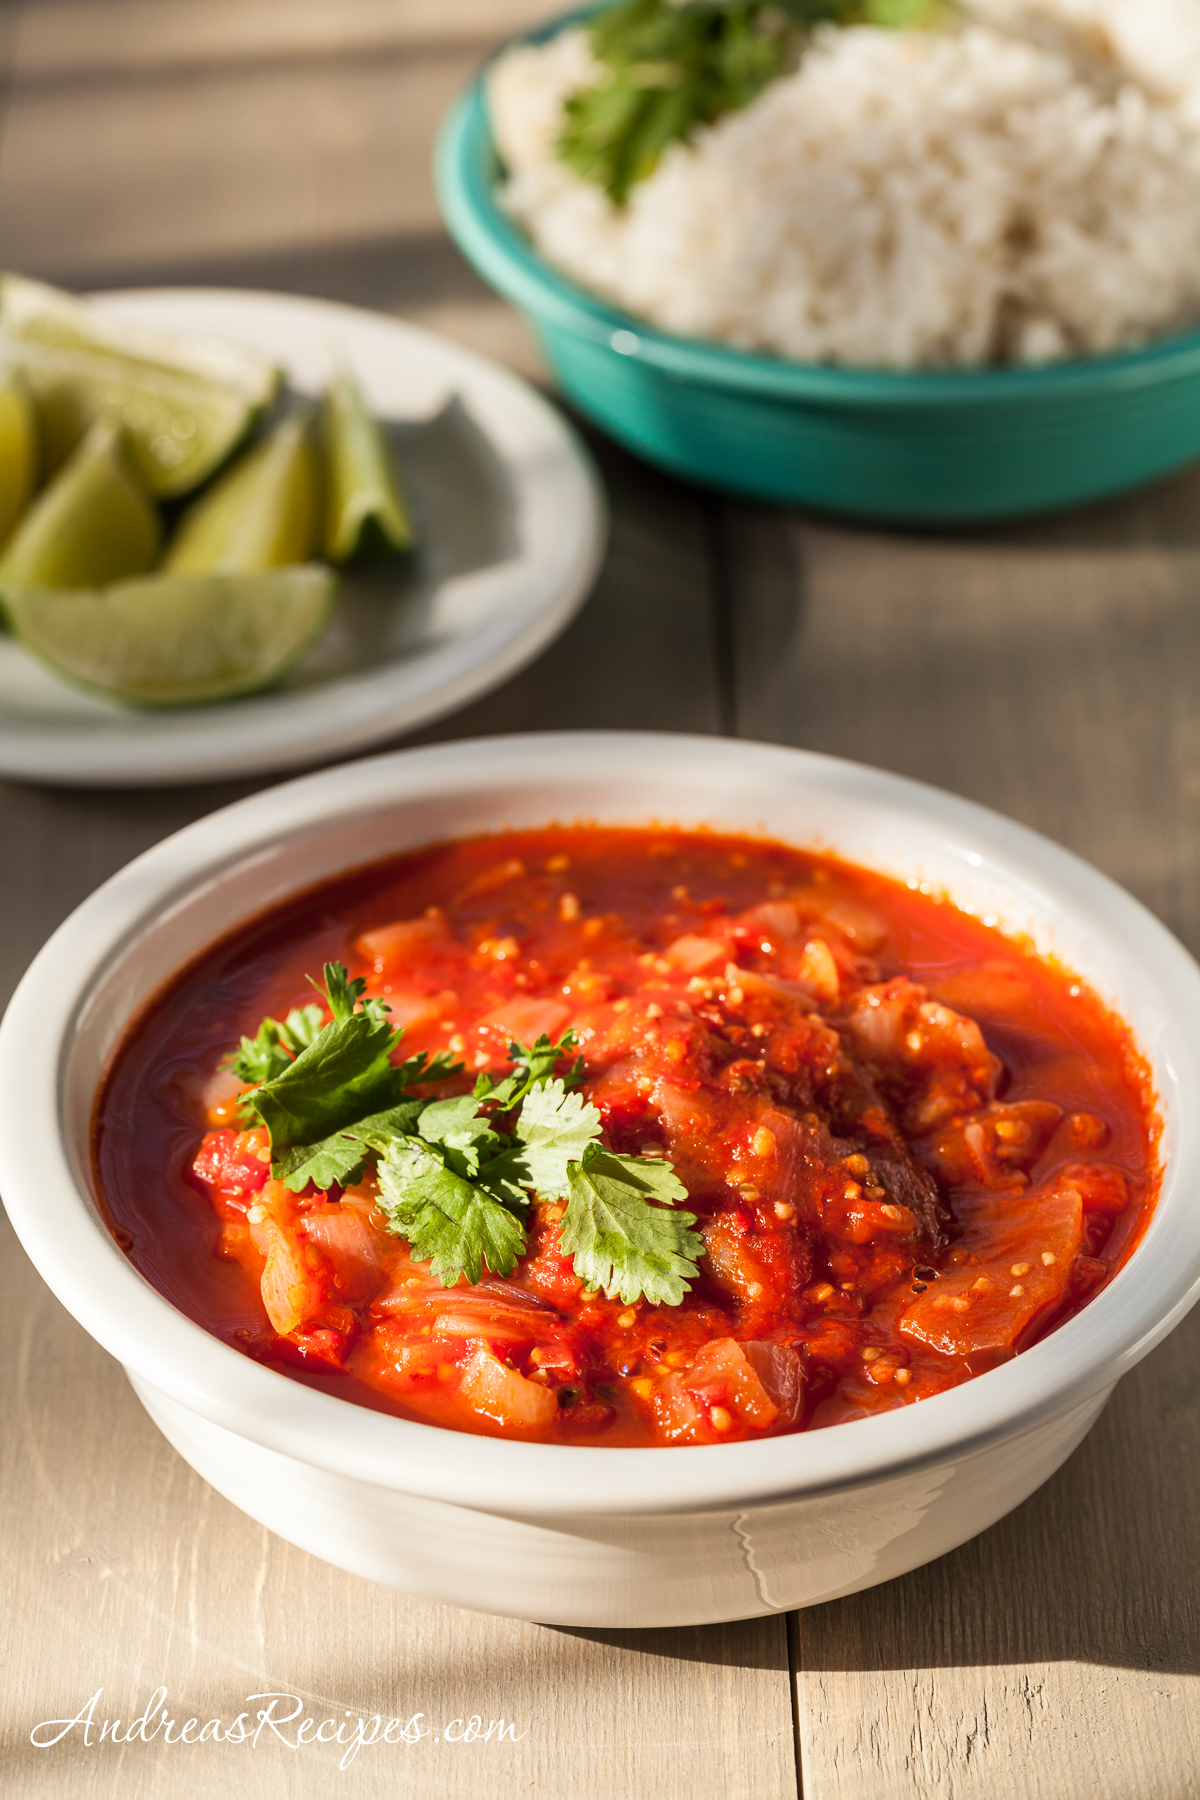 Coconut Rice with Spicy Tomato Sauce (Nasi Lemak with Sambal Tomat) - Andrea Meyers